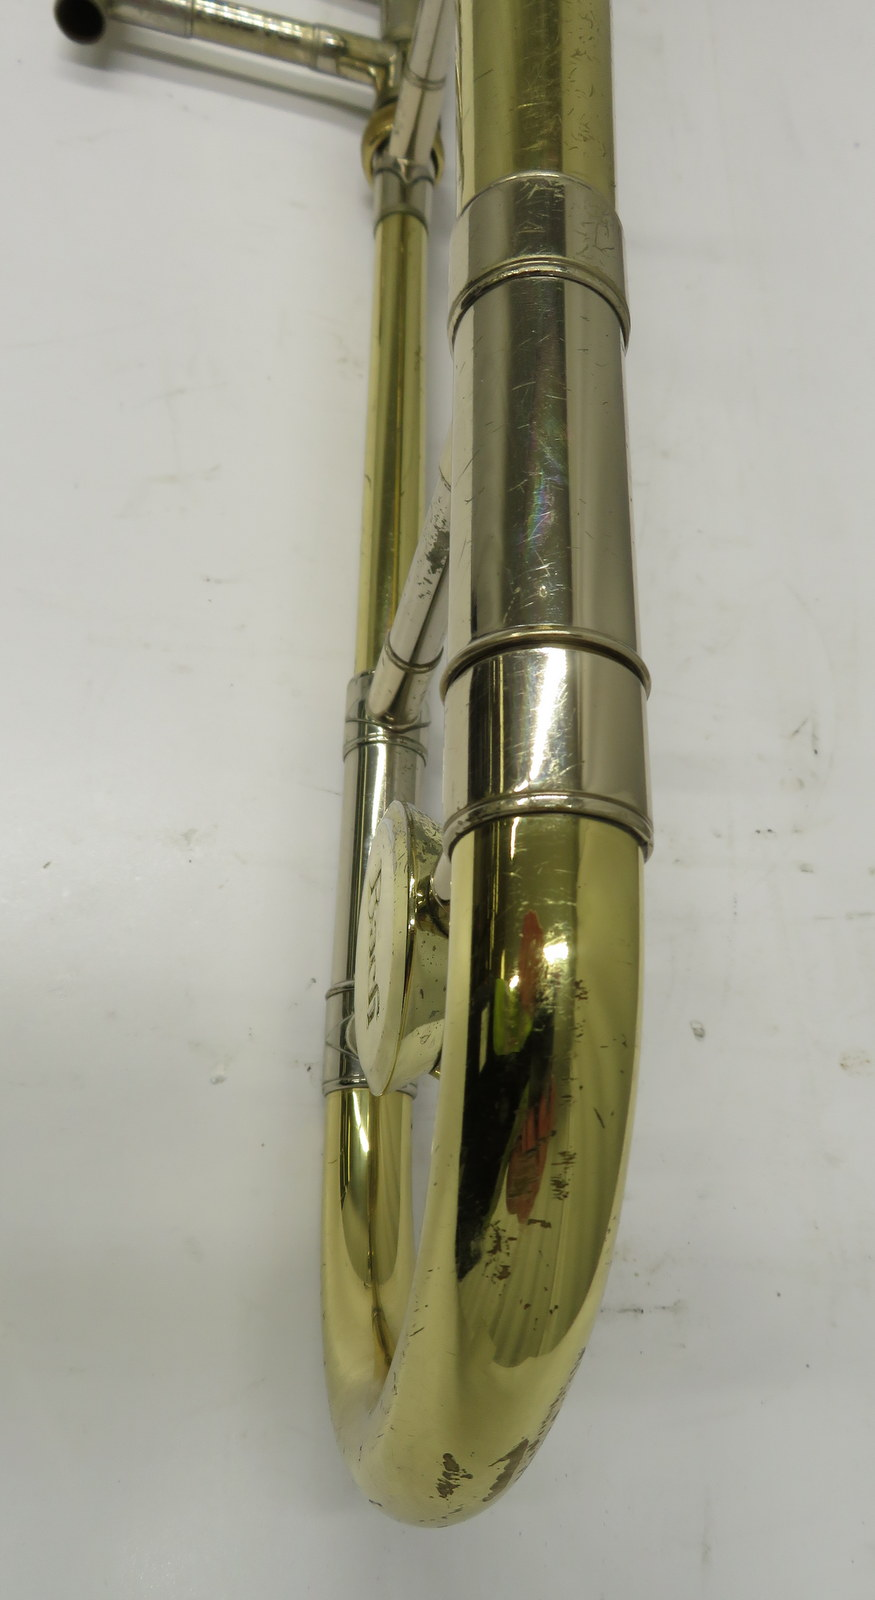 Lot 48 - Bach Stradivarius model 36 trombone with case. Serial number: 17441.